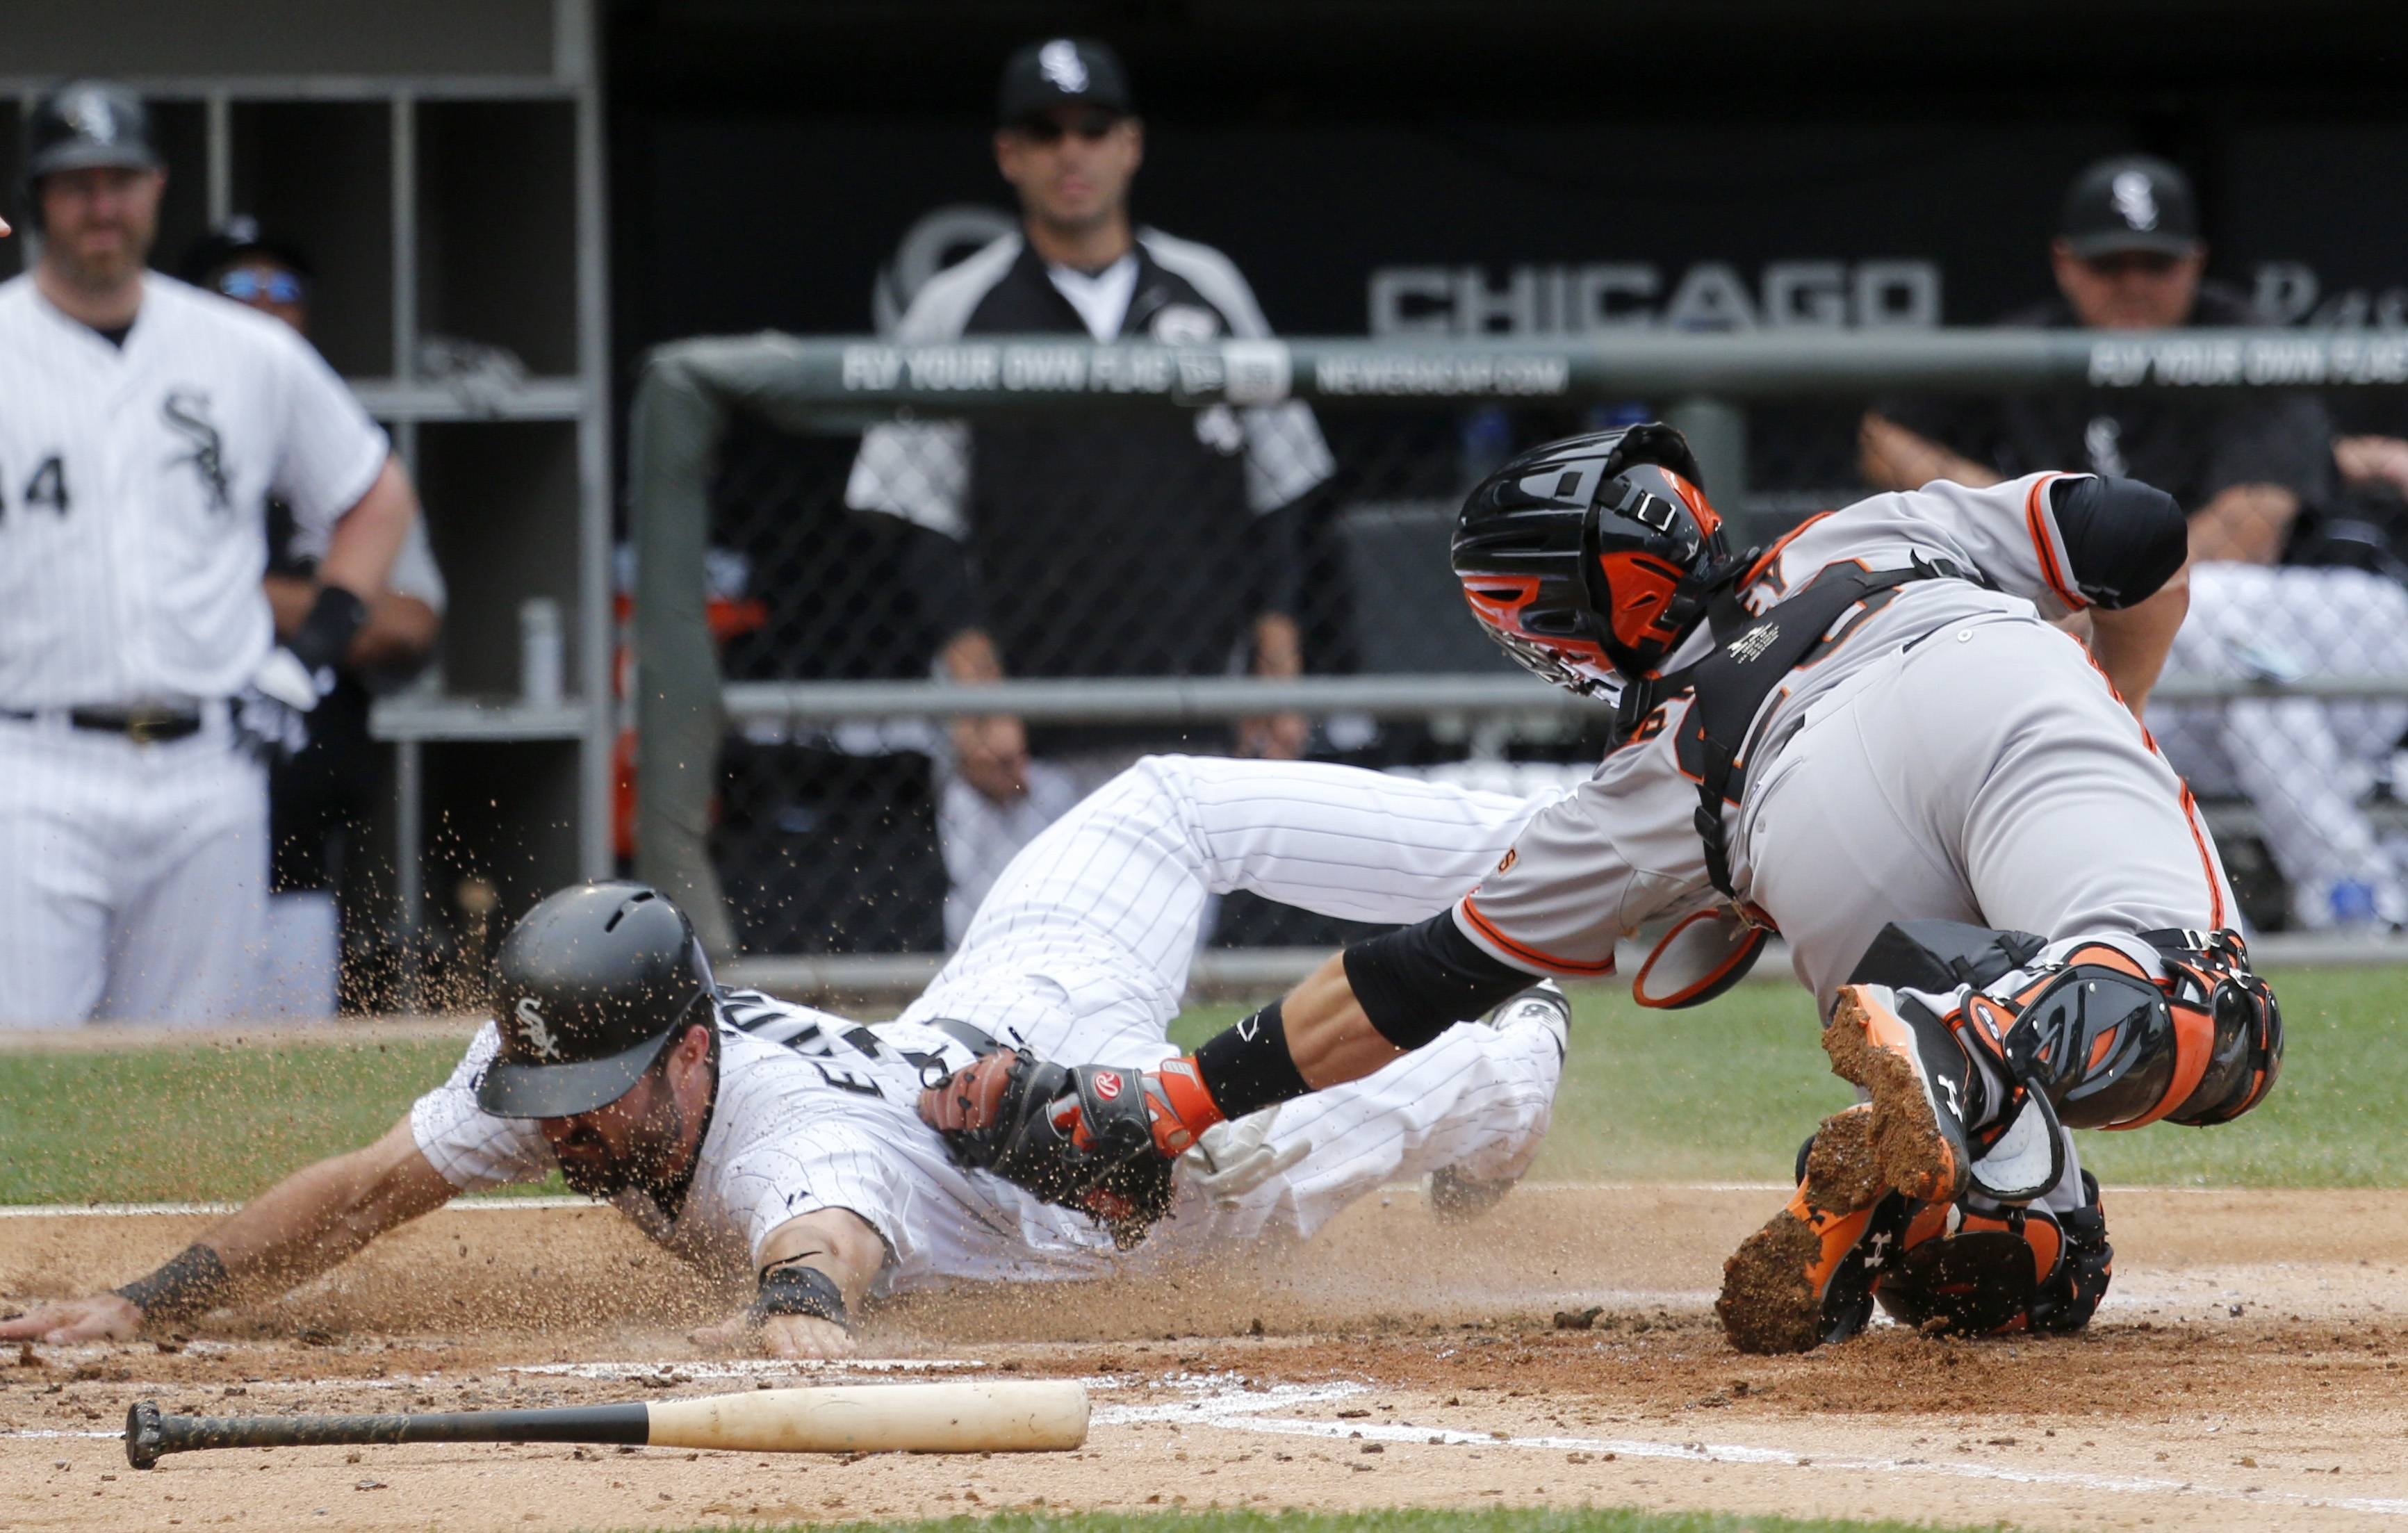 Giants catcher Buster Posey tags out Adam Eaton of the White Sox in the third inning Wednesday at U.S. Cellular Field.